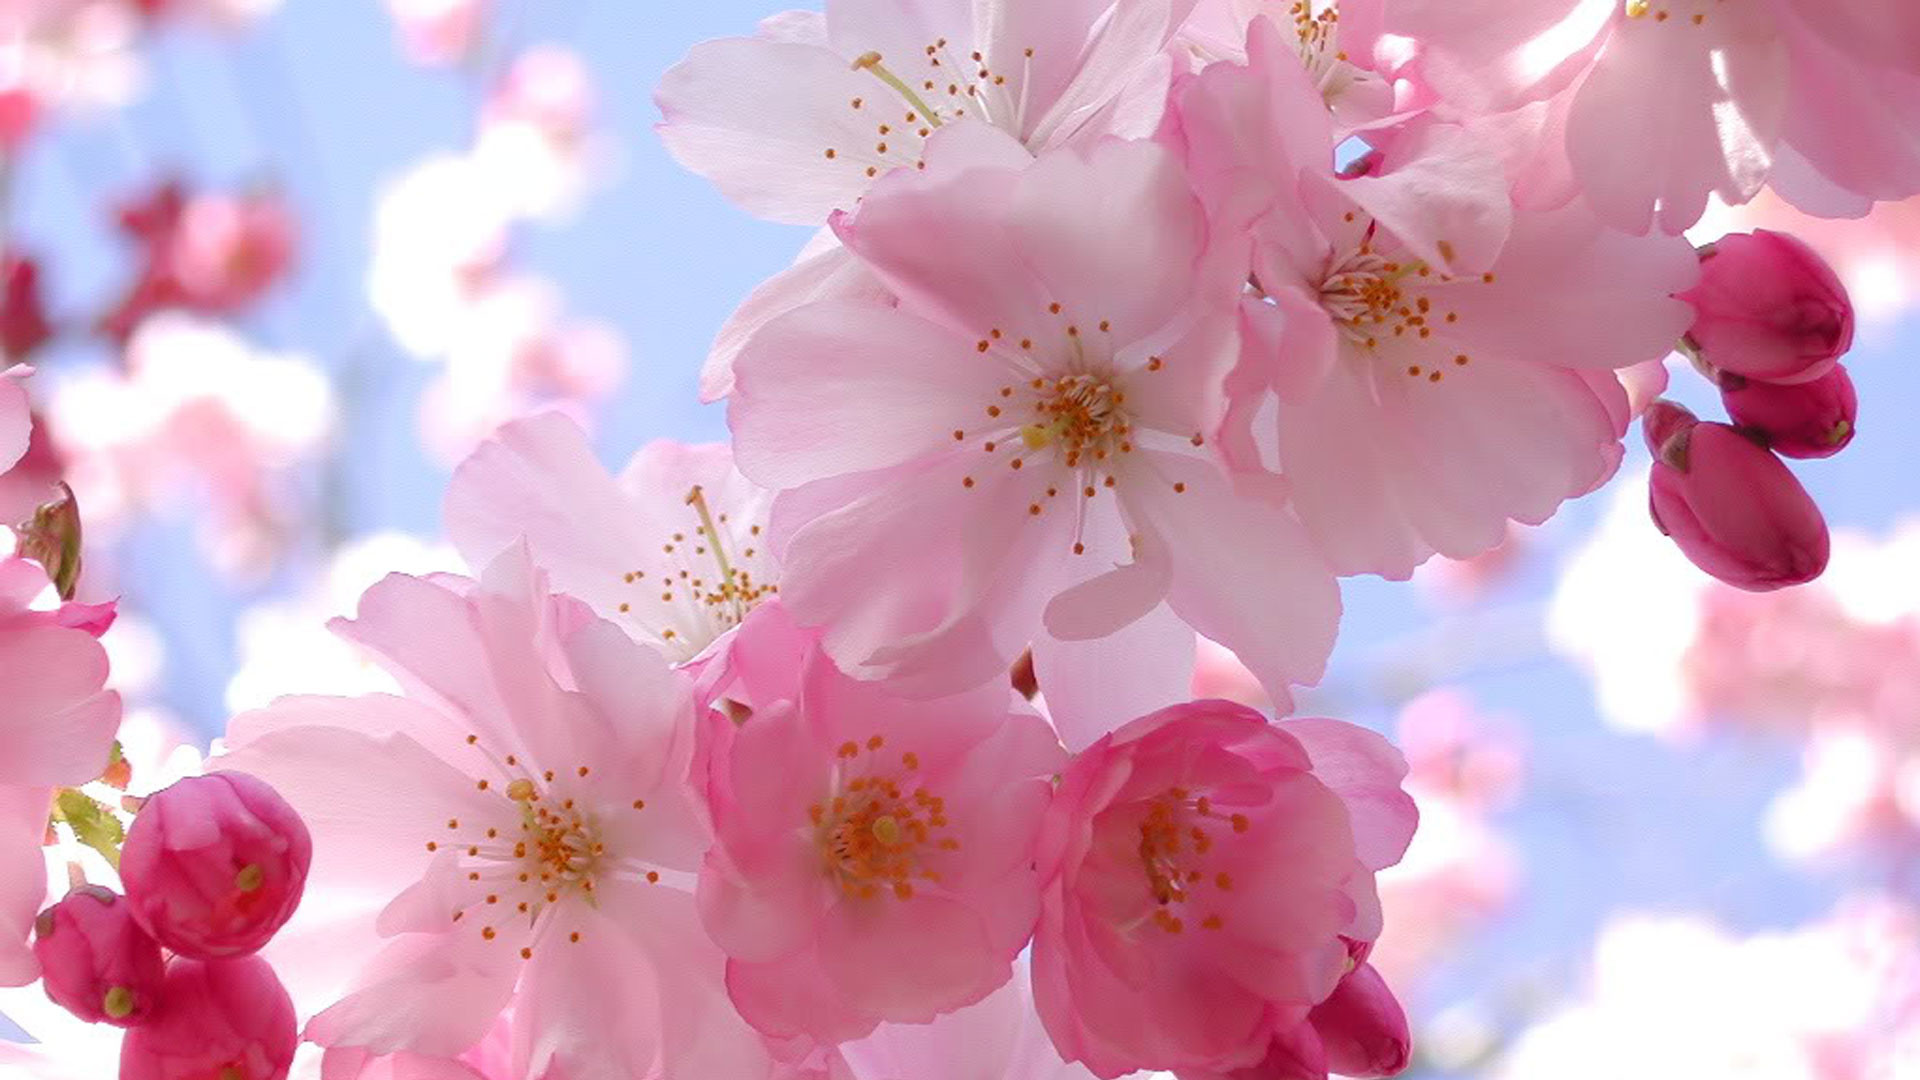 Pink Cherry Blossom Wallpaper for iPhone Wallpaper with .